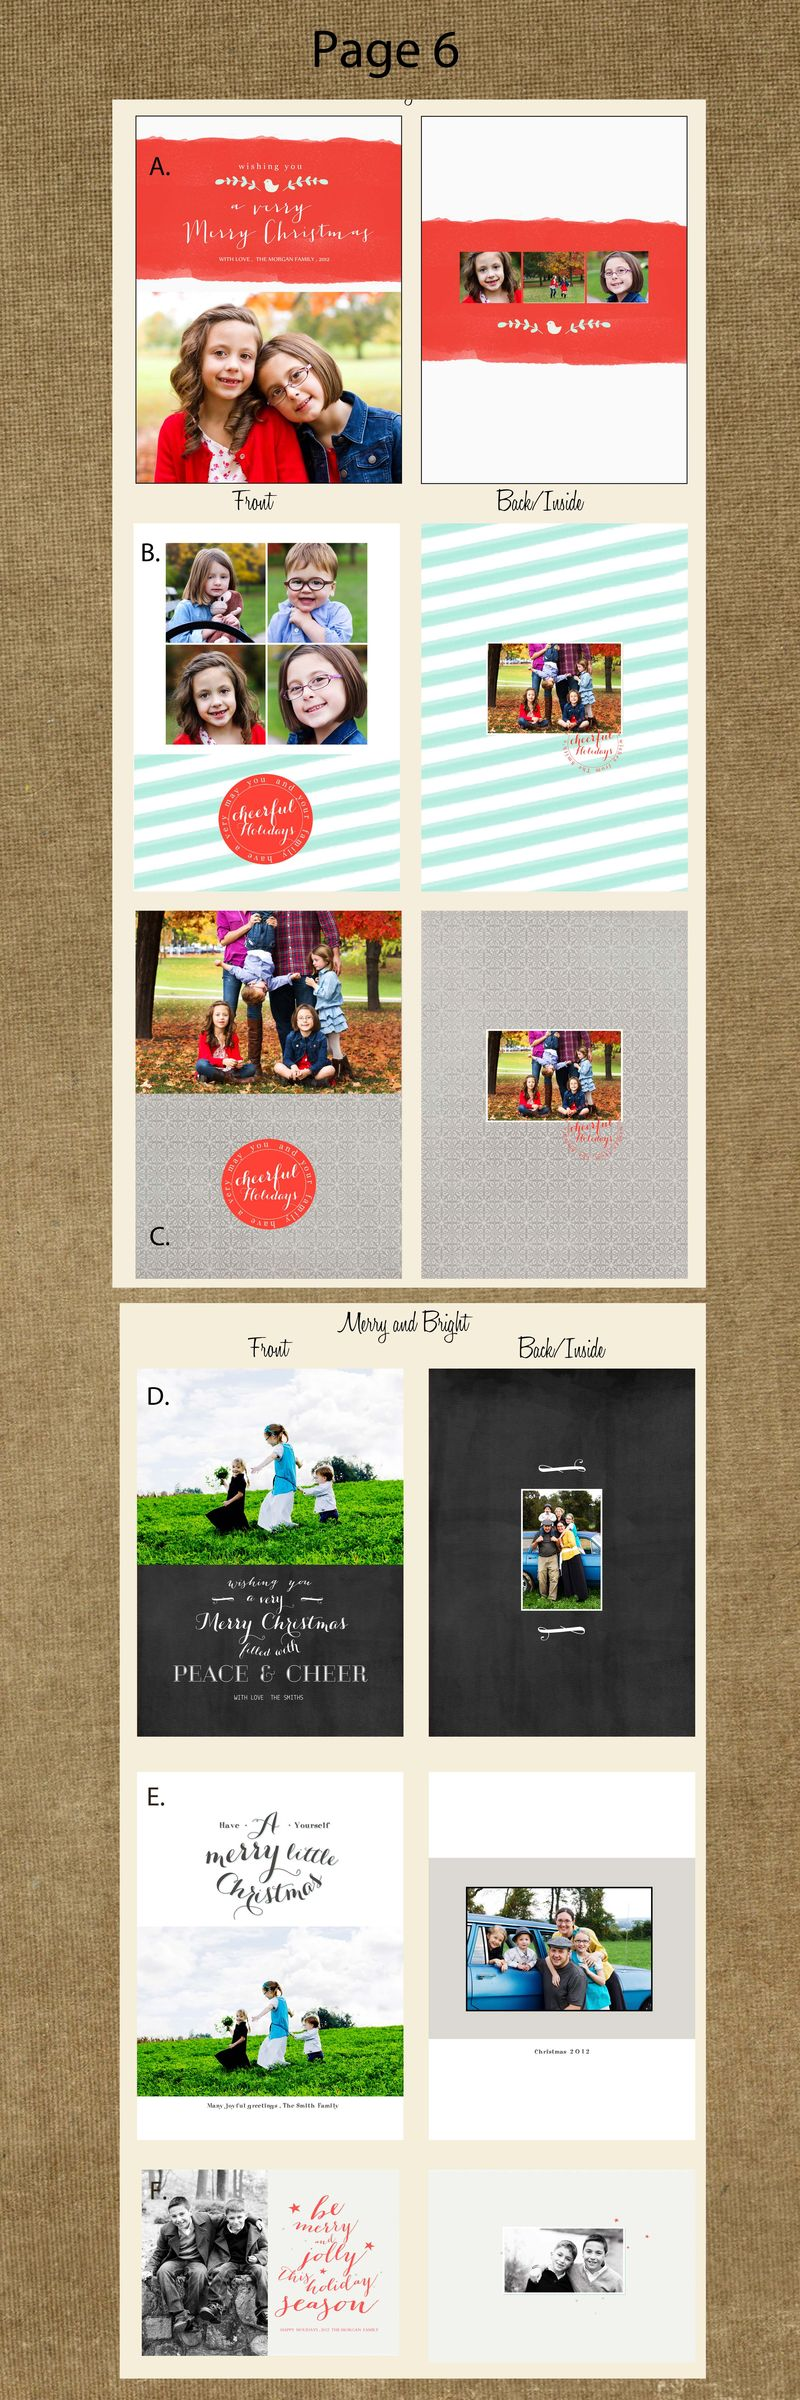 Page 7 cards